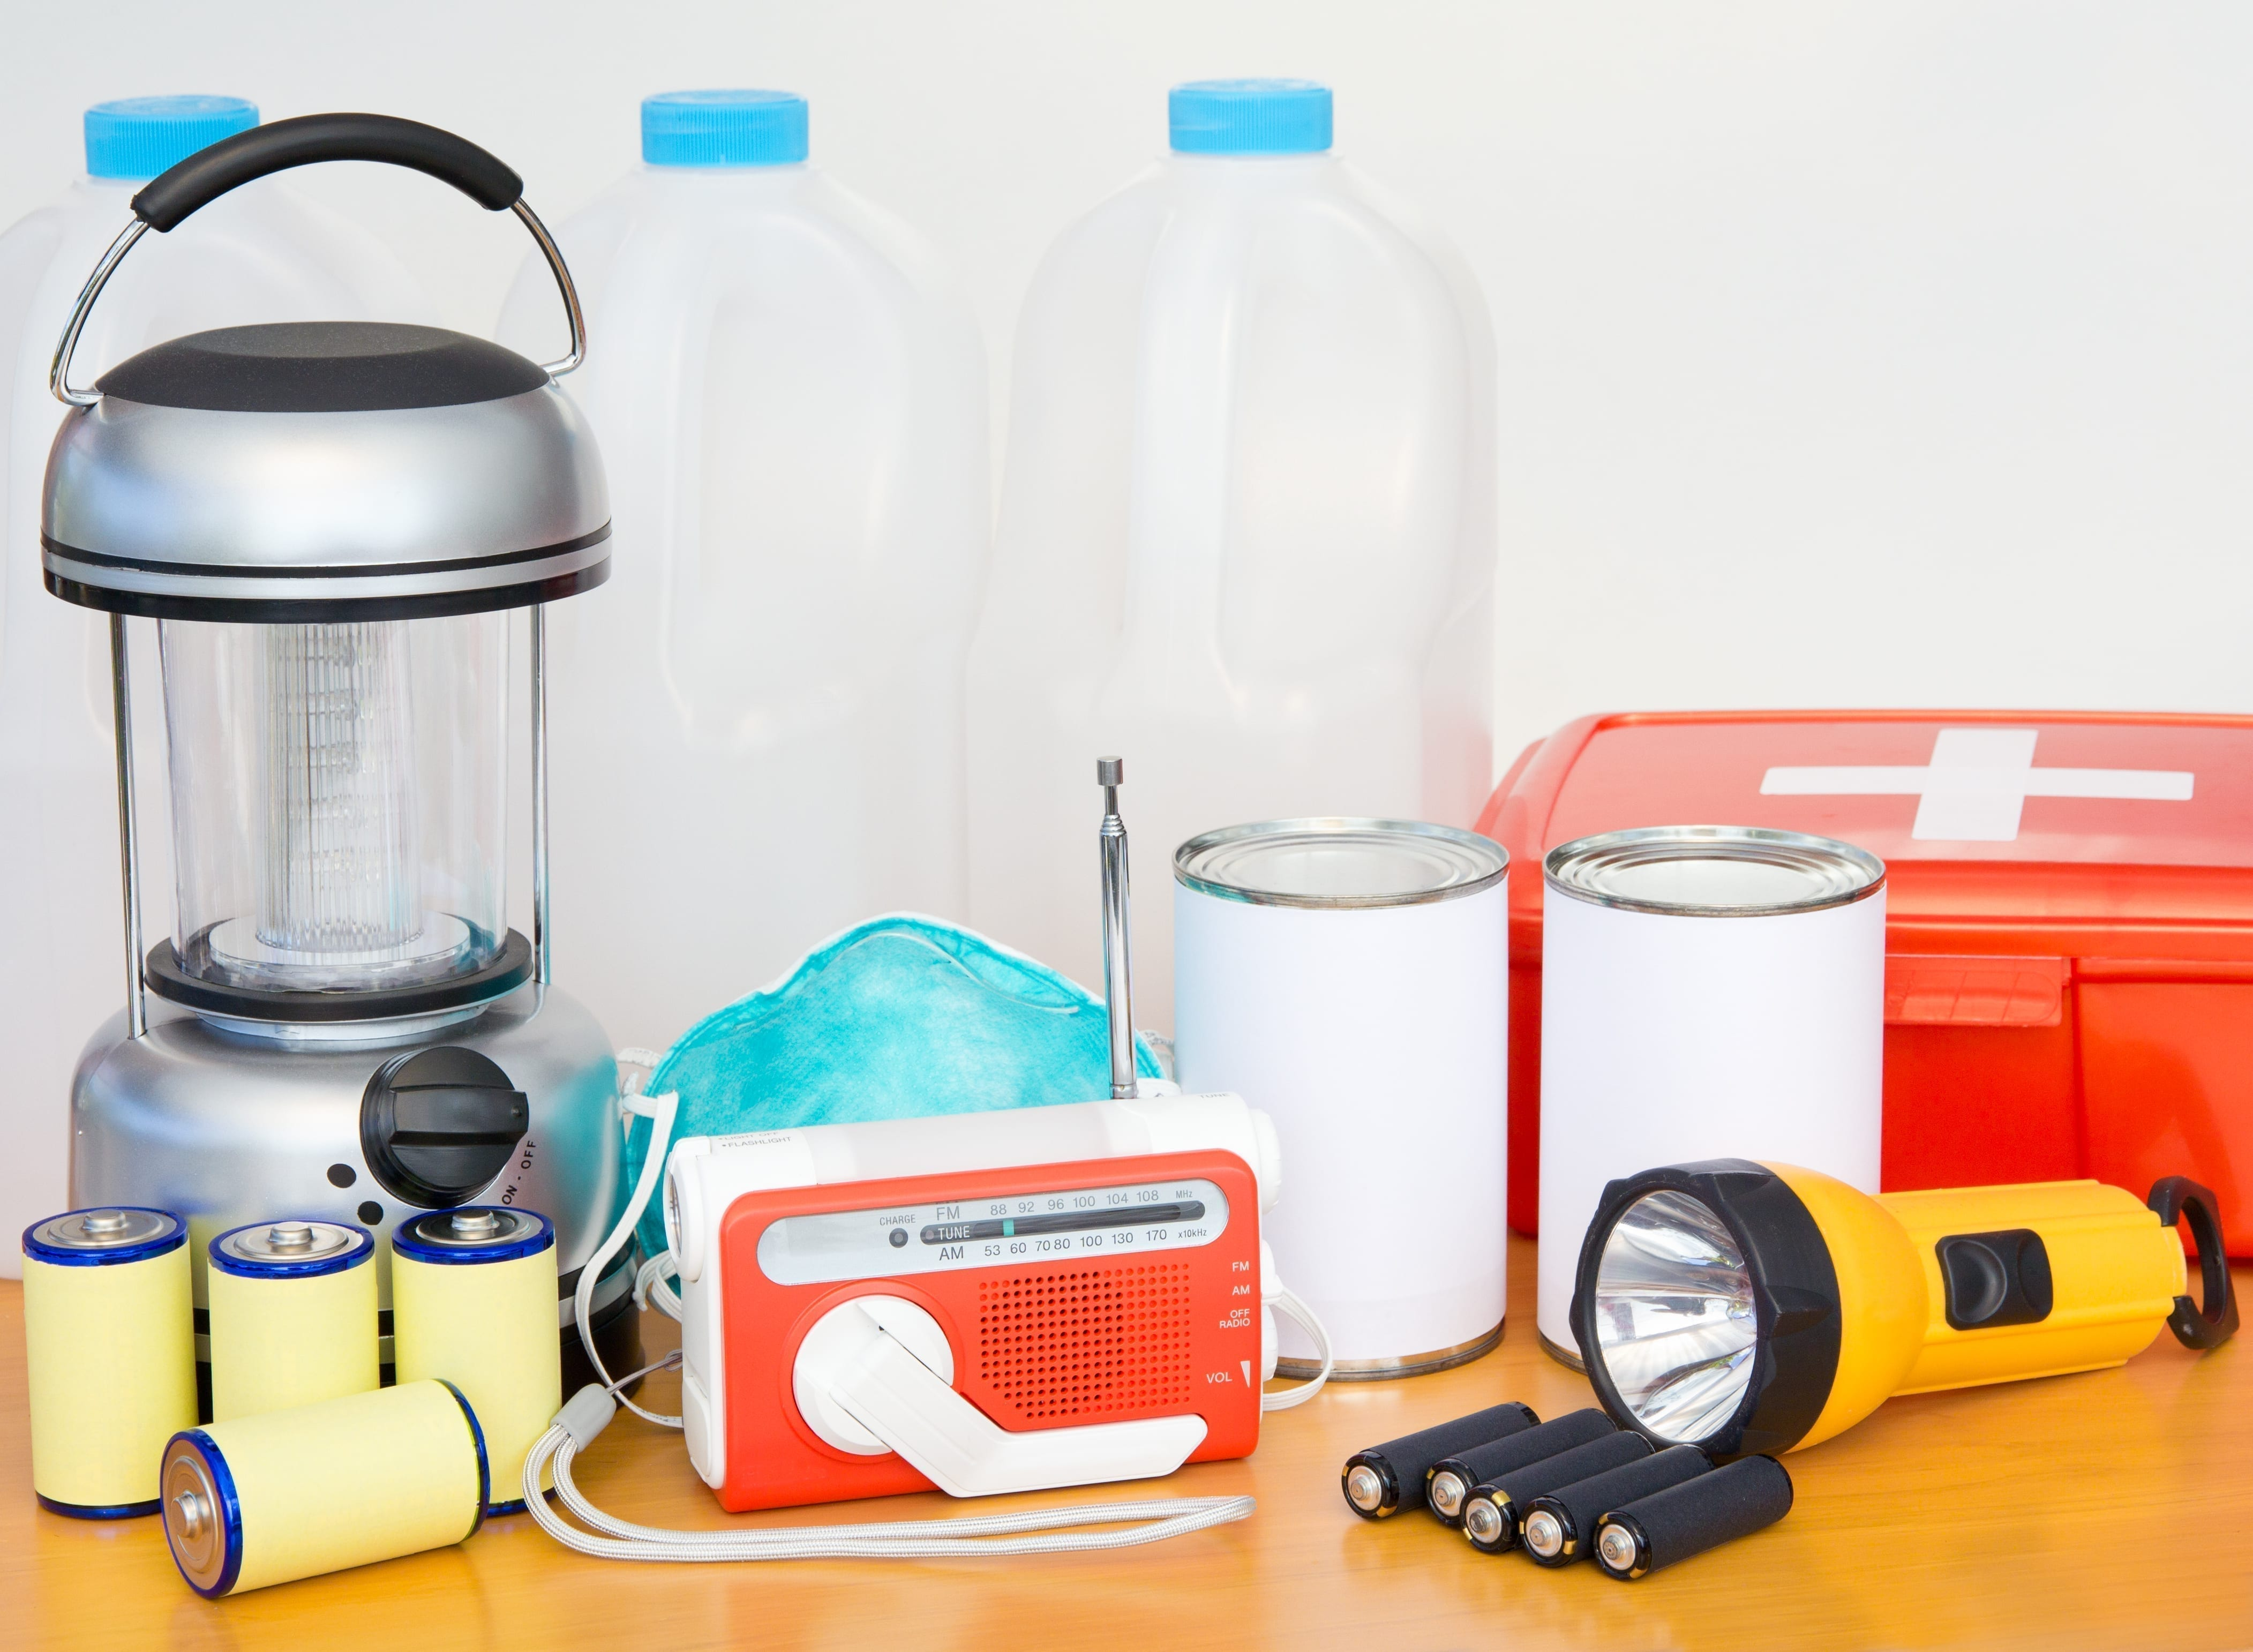 Do you have an emergency preparedness earthquake kit? If not you should definitely put one together!